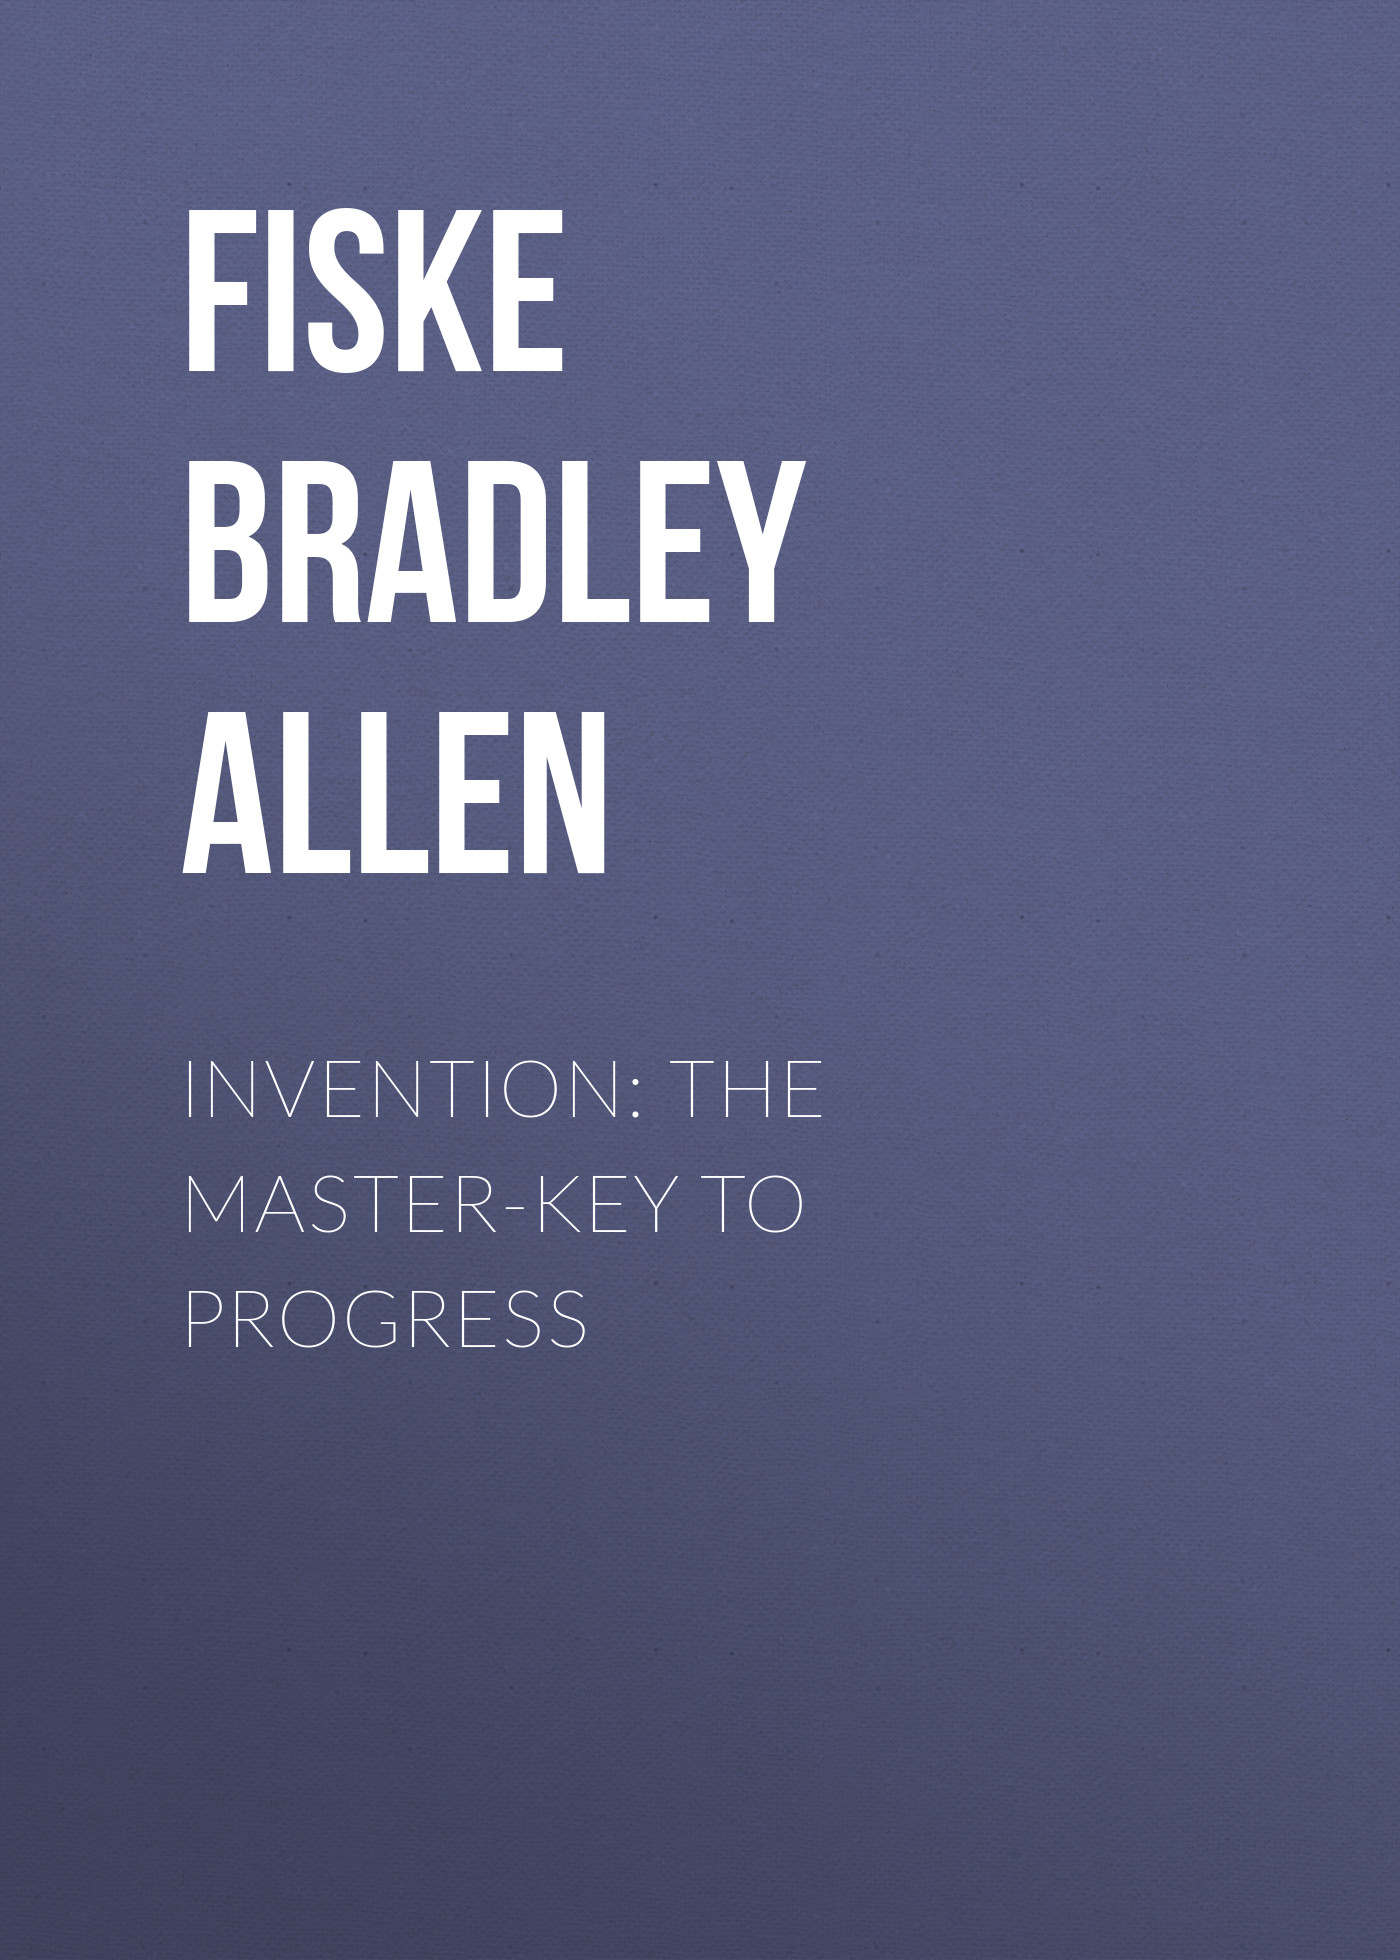 Fiske Bradley Allen Invention: The Master-key to Progress